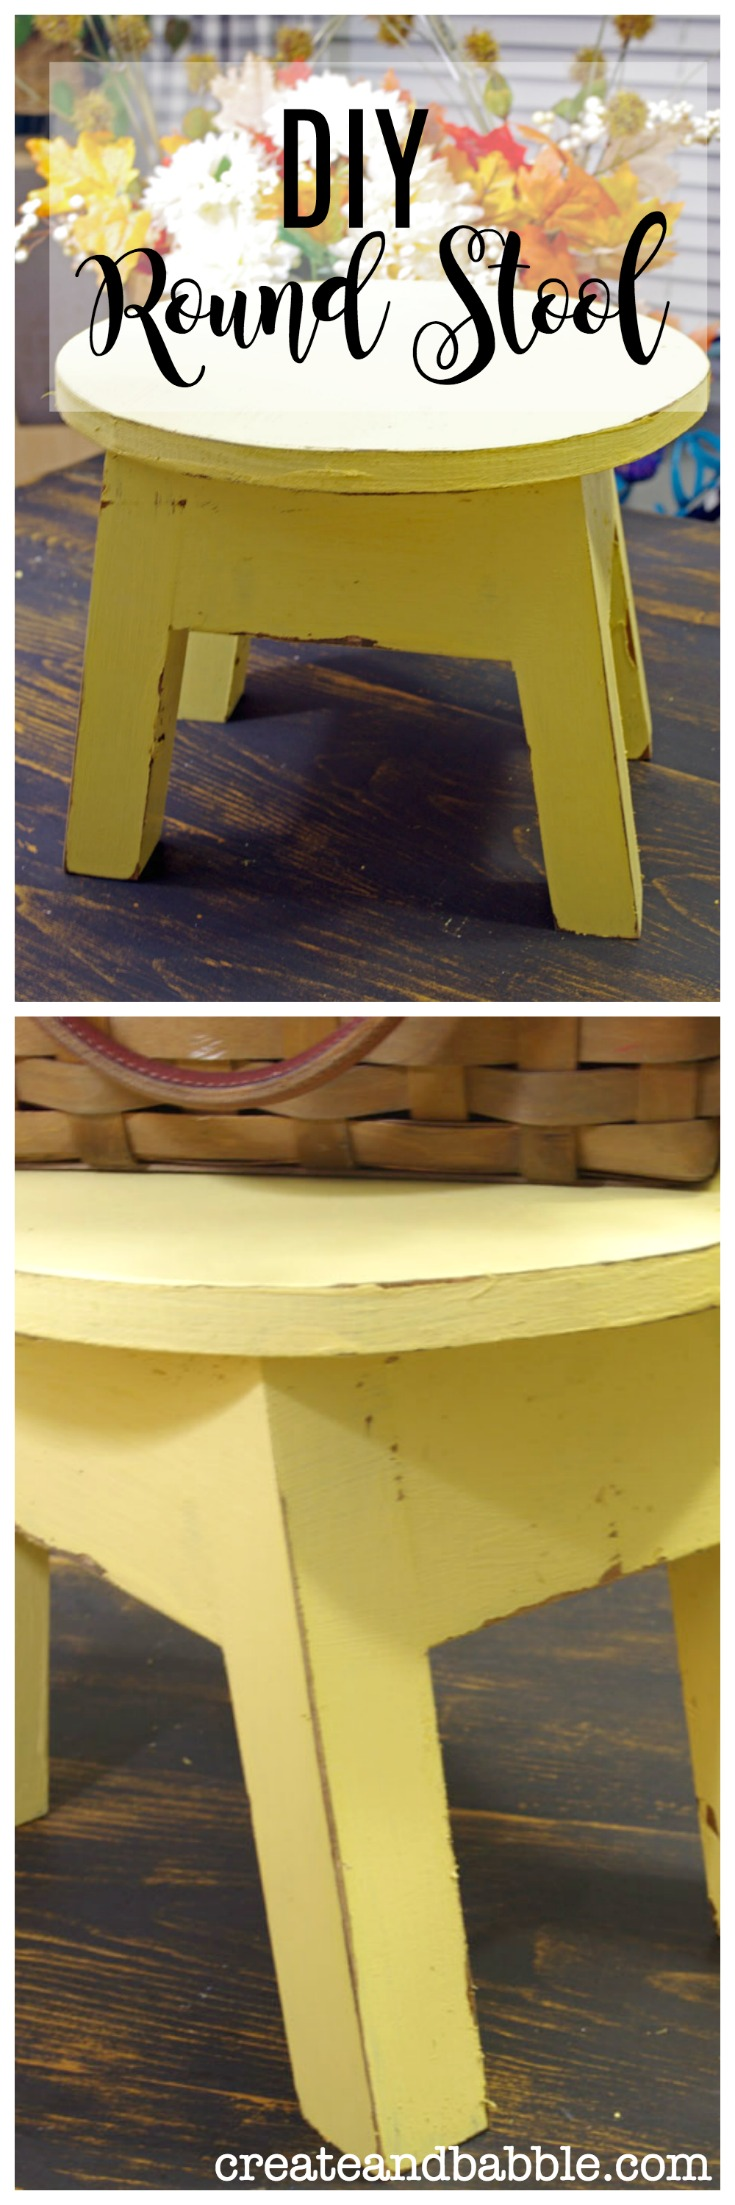 DIY Little Round Yellow Stool